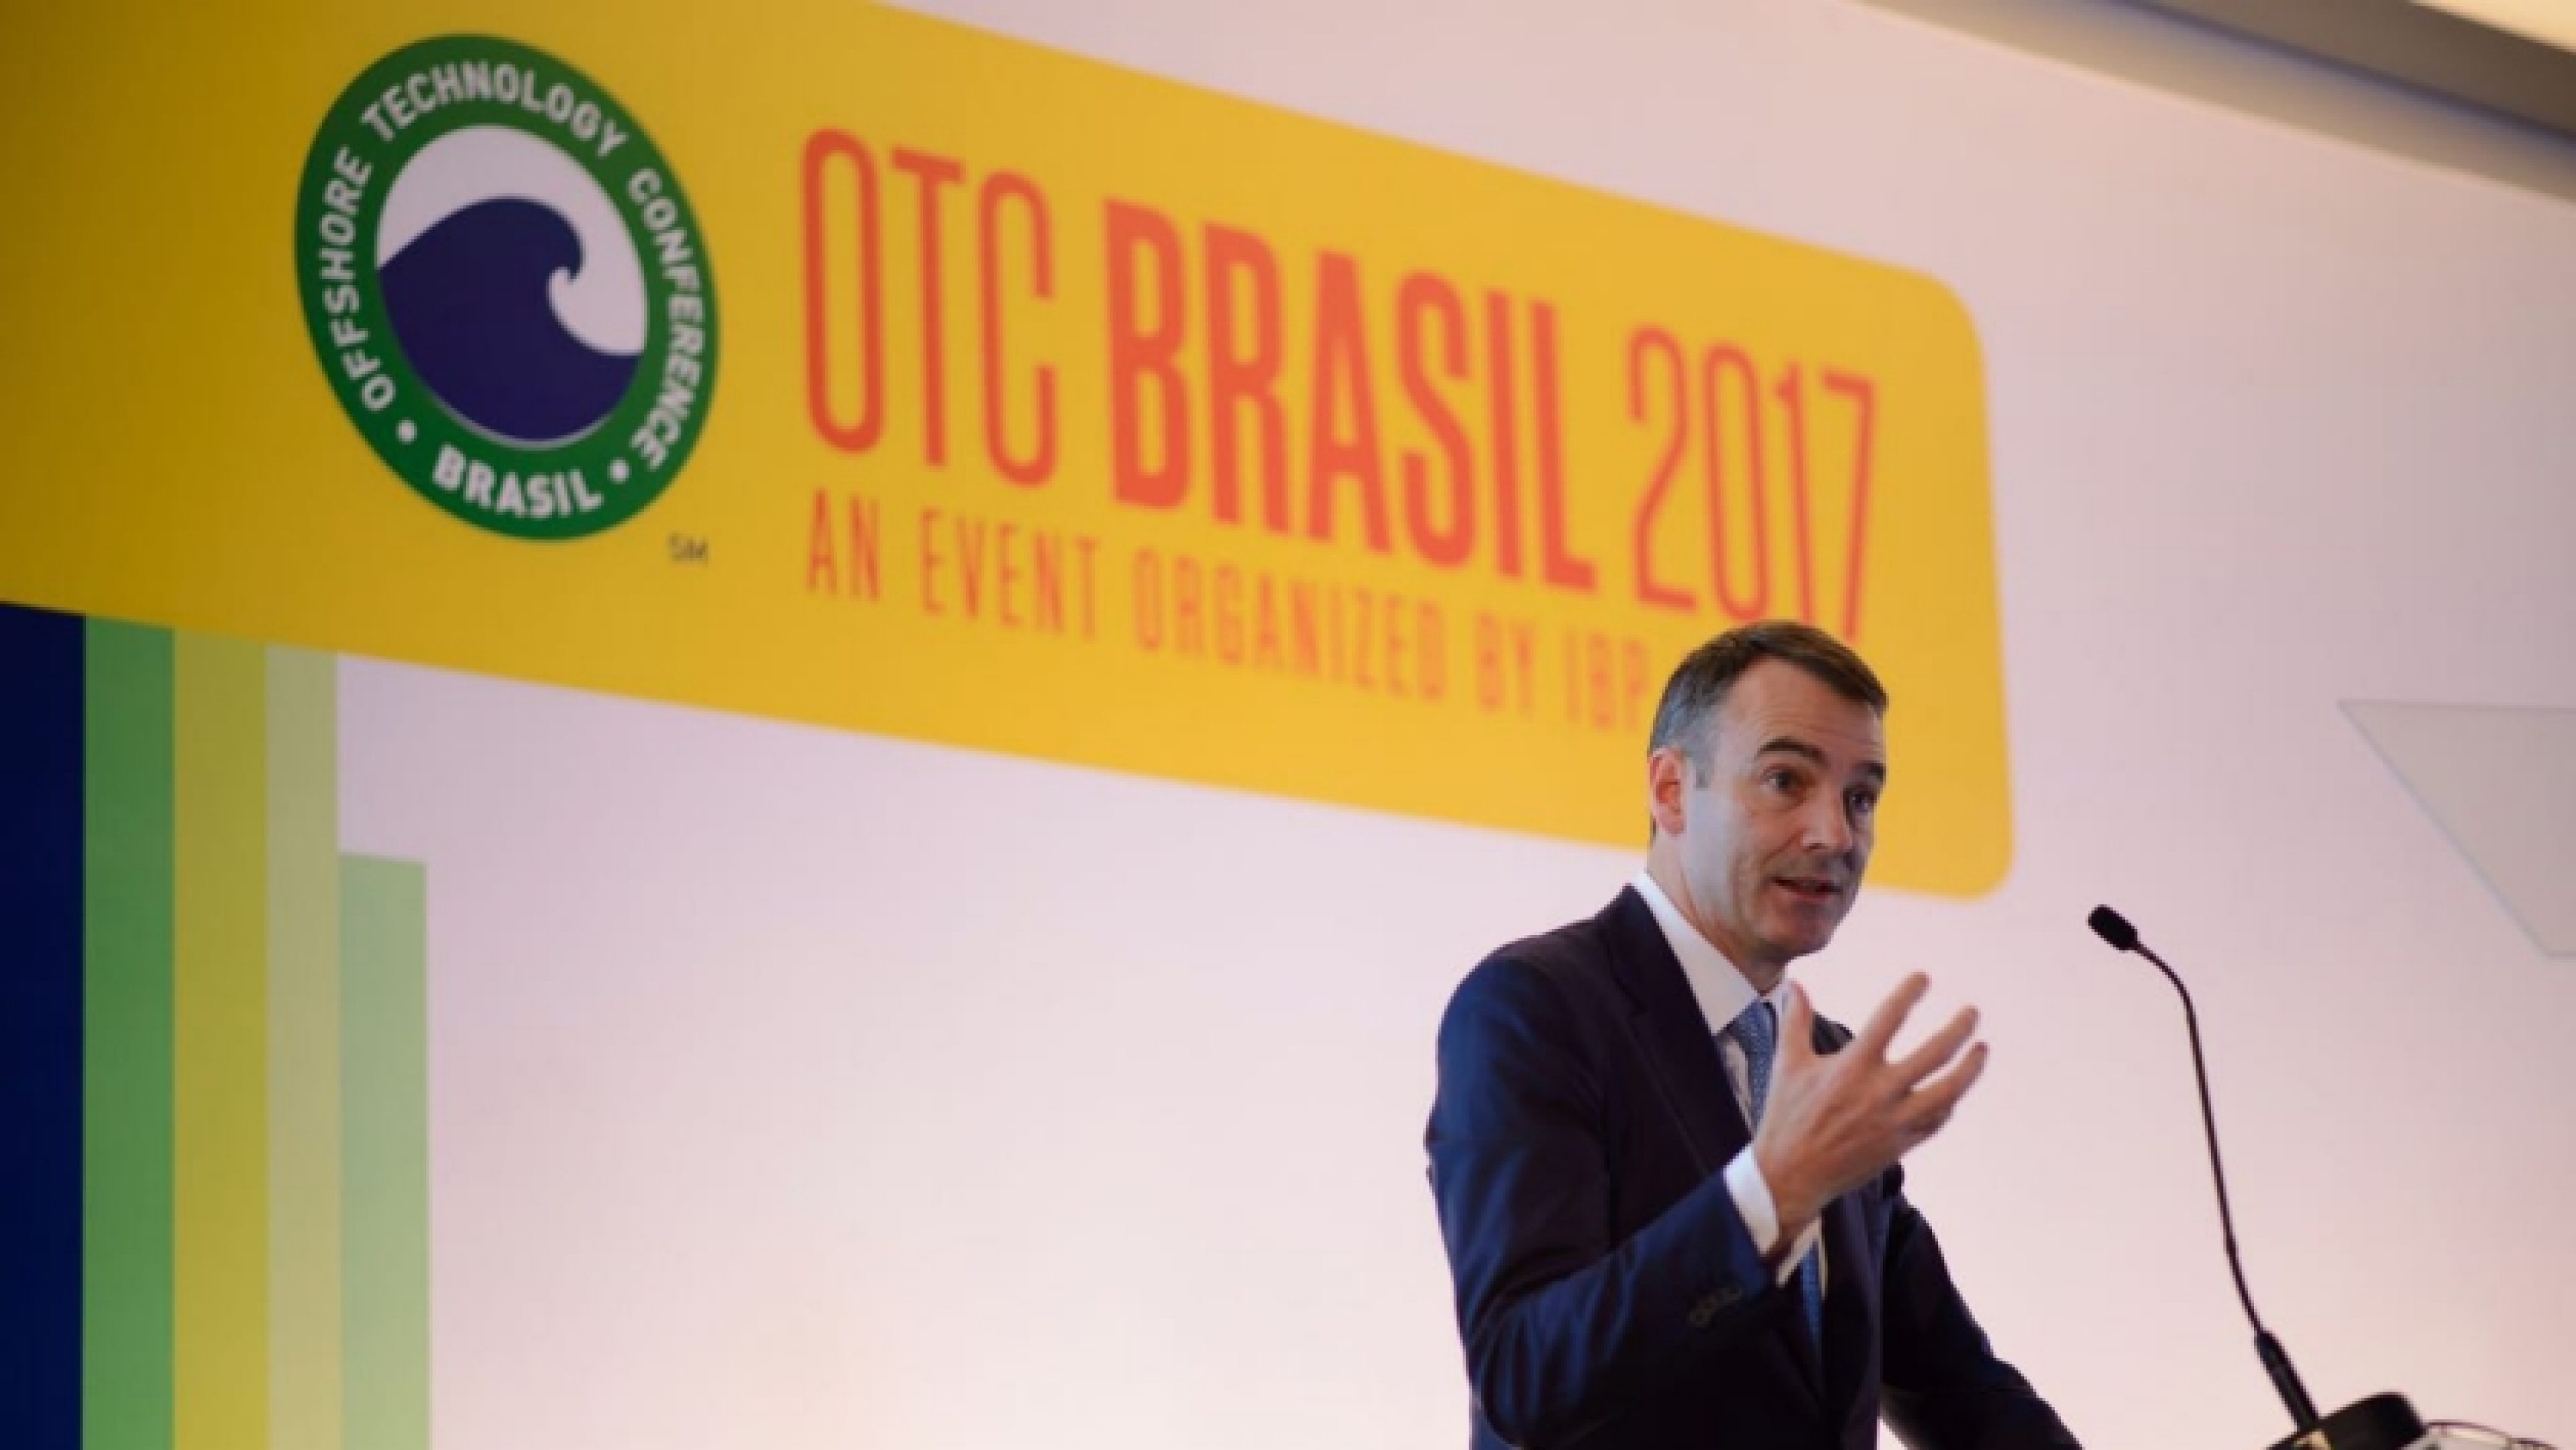 Bernard Looney at the Offshore Technology Conference, Rio de Janeiro, Brazil